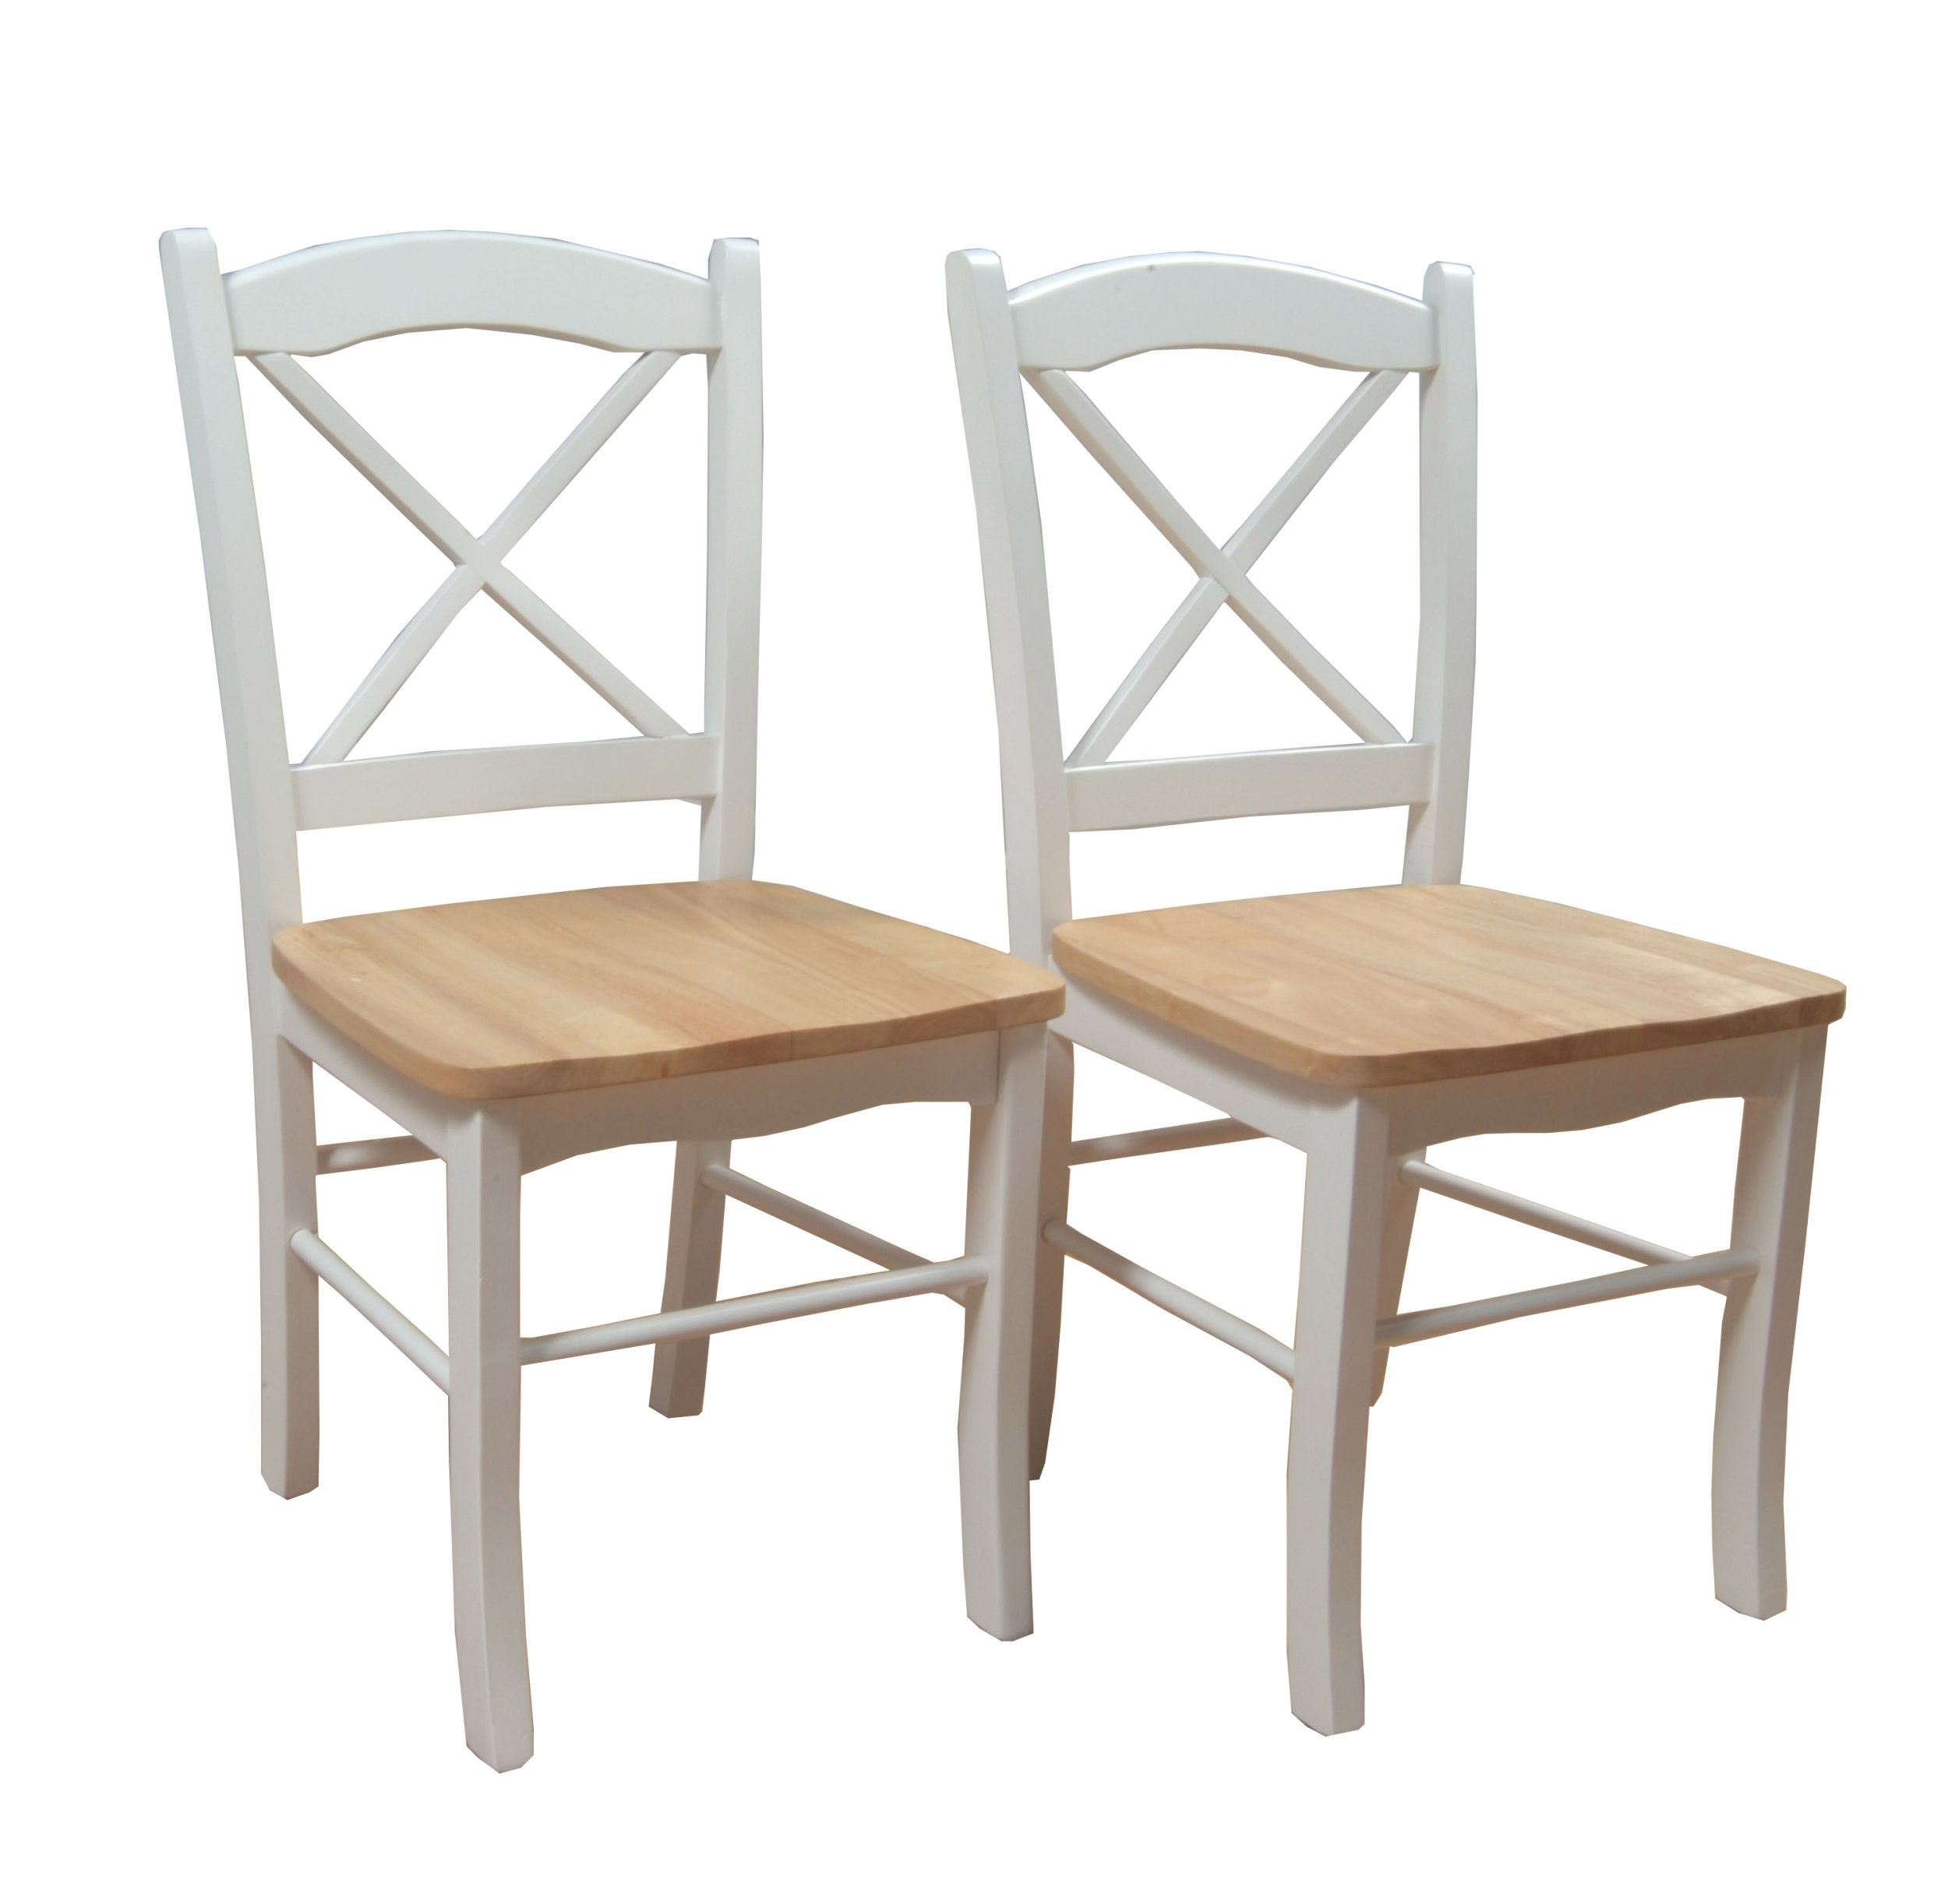 Target Marketing Systems Set of 2 Tiffany Dining Chairs with Cross Back, Set of 2, White/Natural by Target Marketing Systems